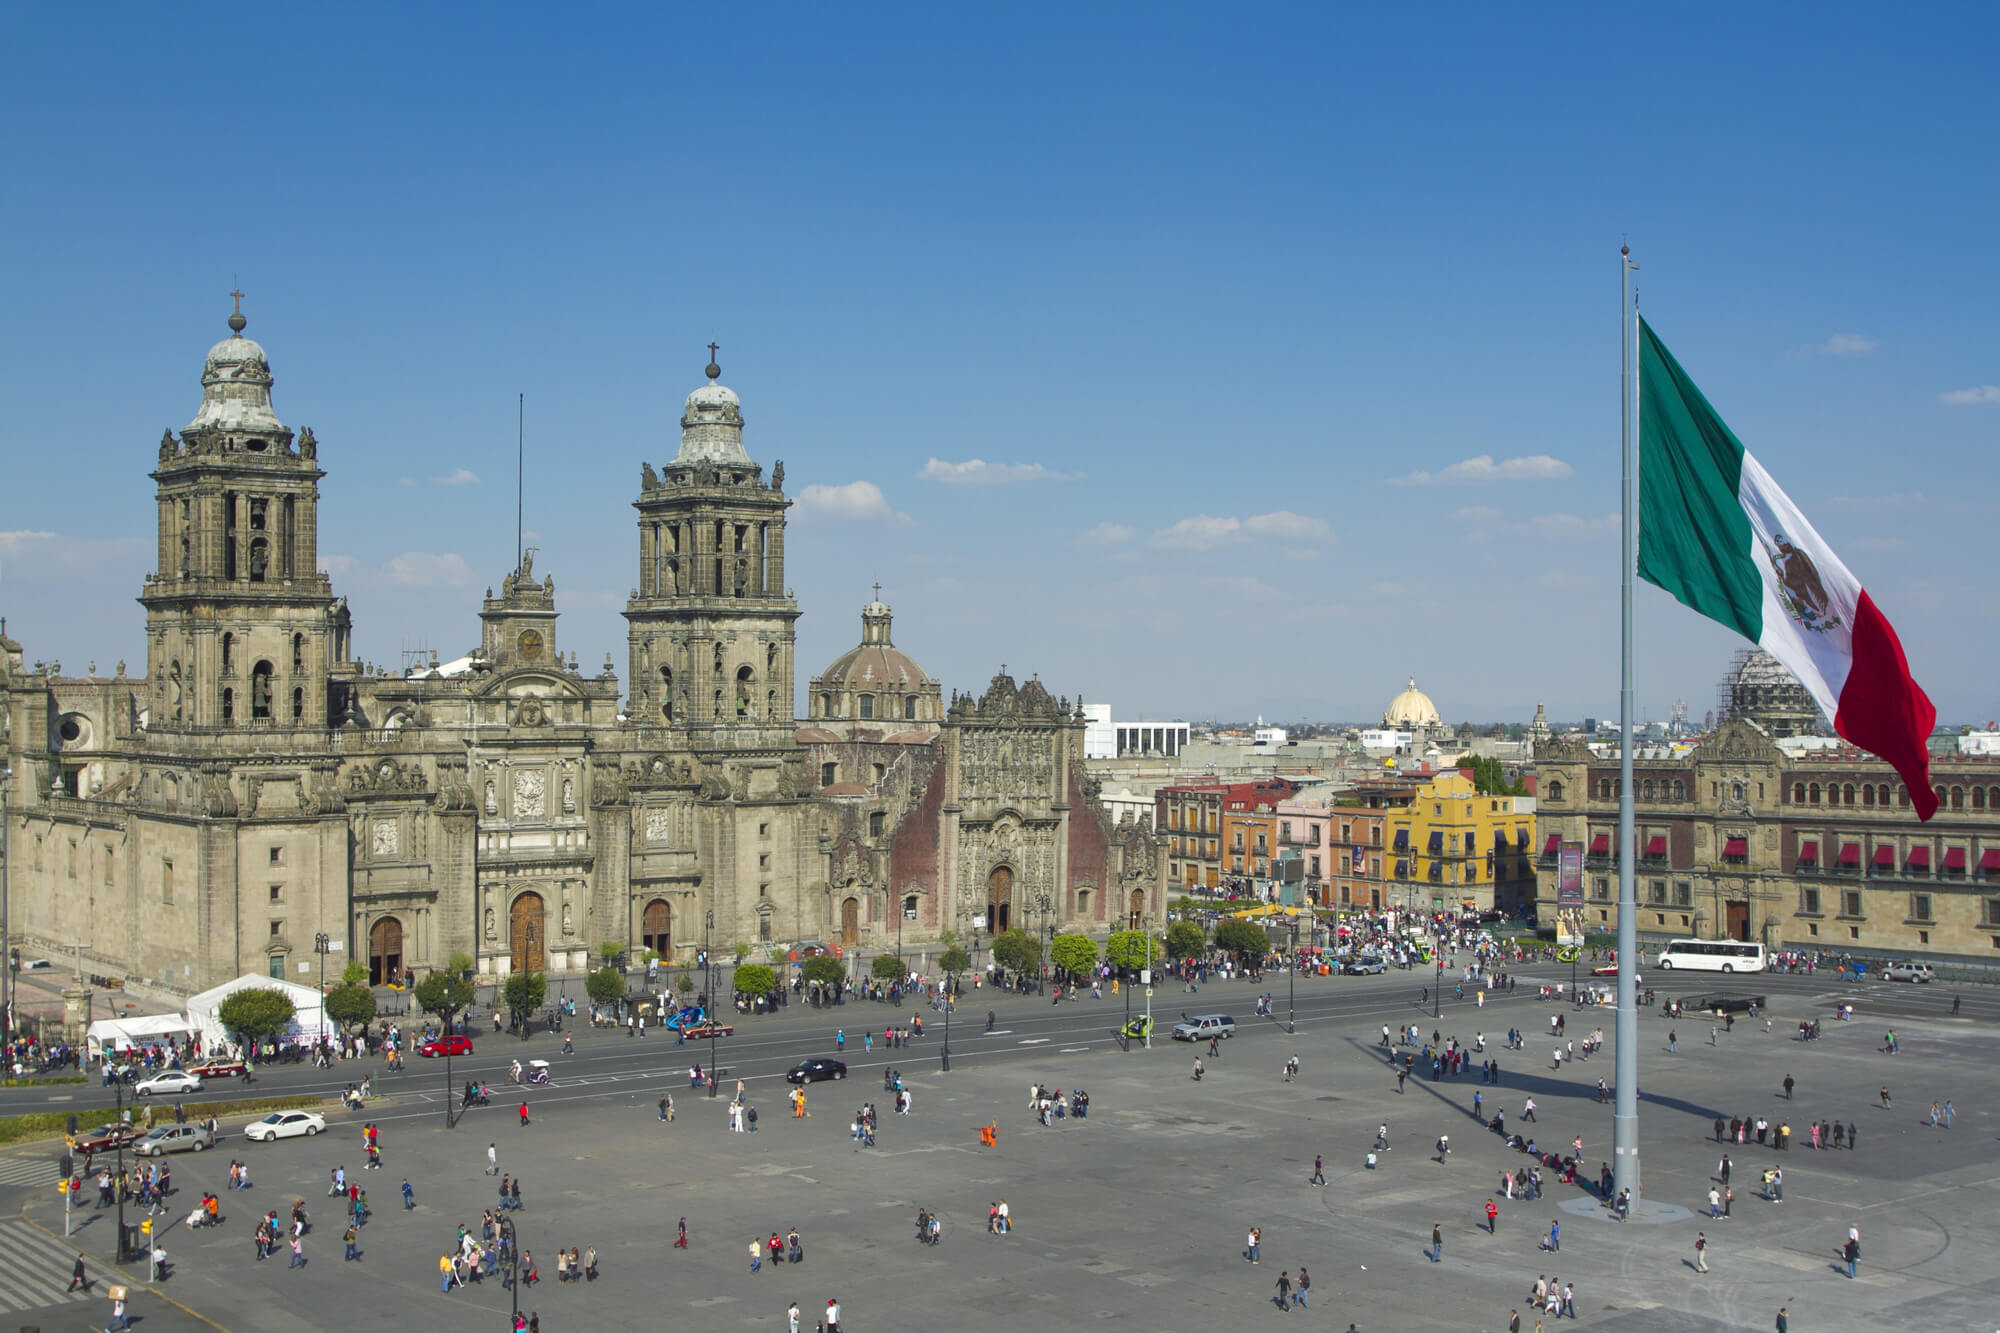 Th Zocalo in MExico City with giant Mexican flag in front